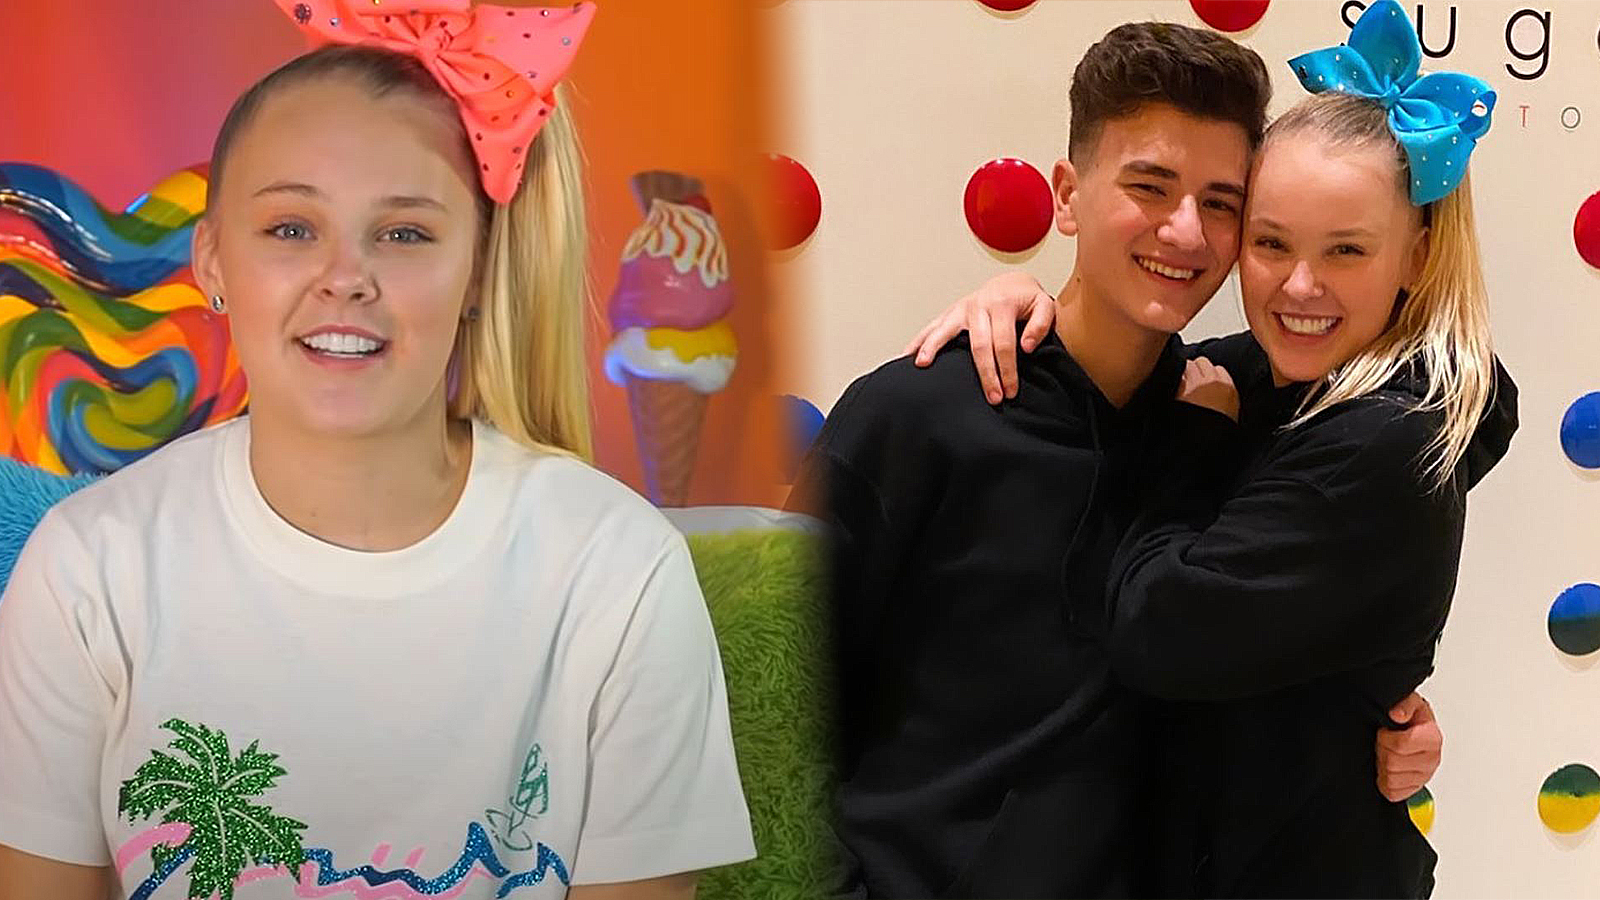 A photo of JoJo Siwa is shown next to another photo of herself and Mark Bontempo having a hug.